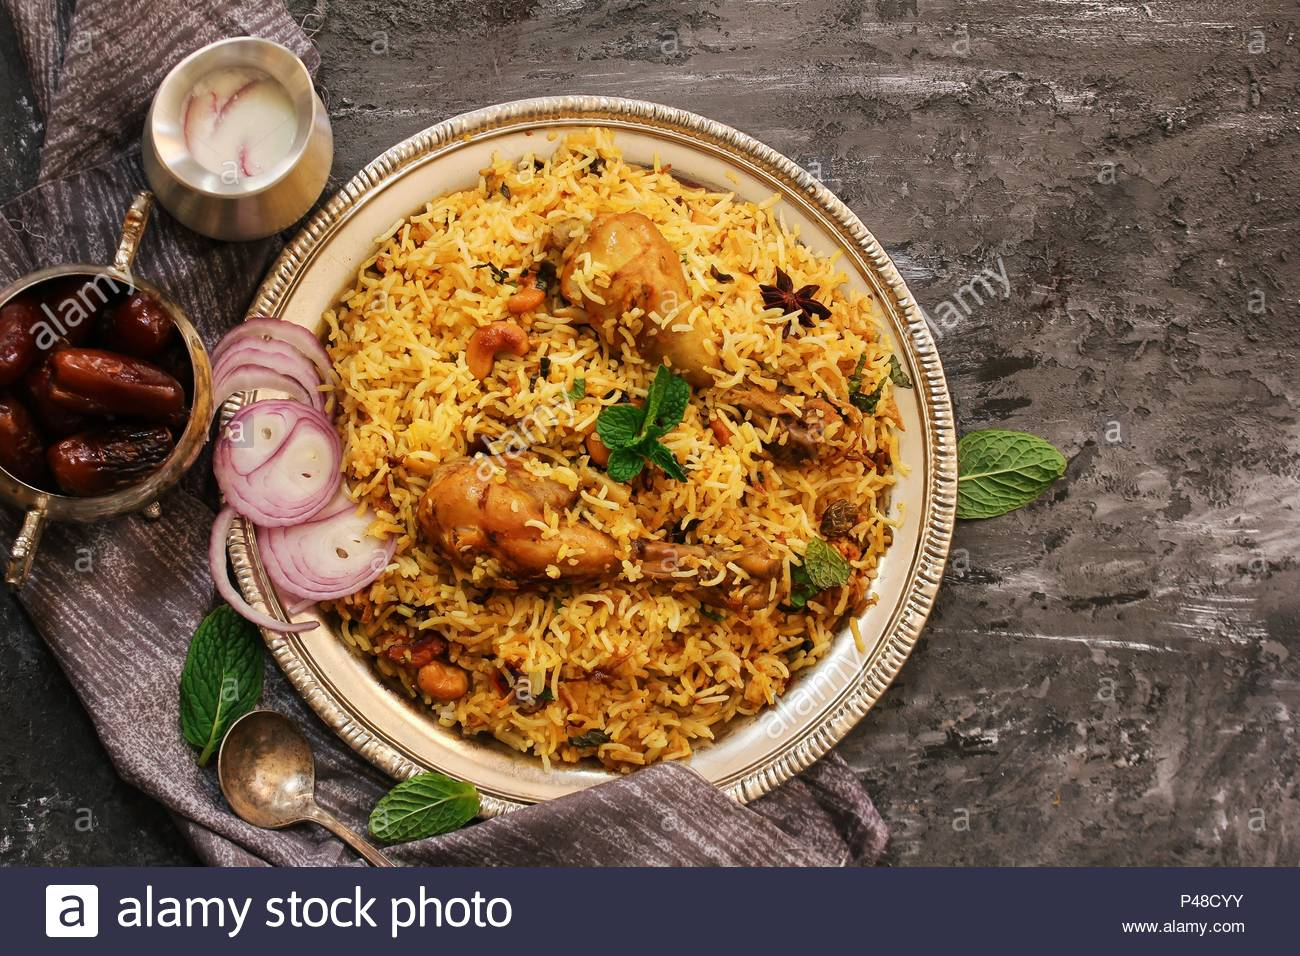 Make-This-Delicious-Biryani-with-Basmati-Rice